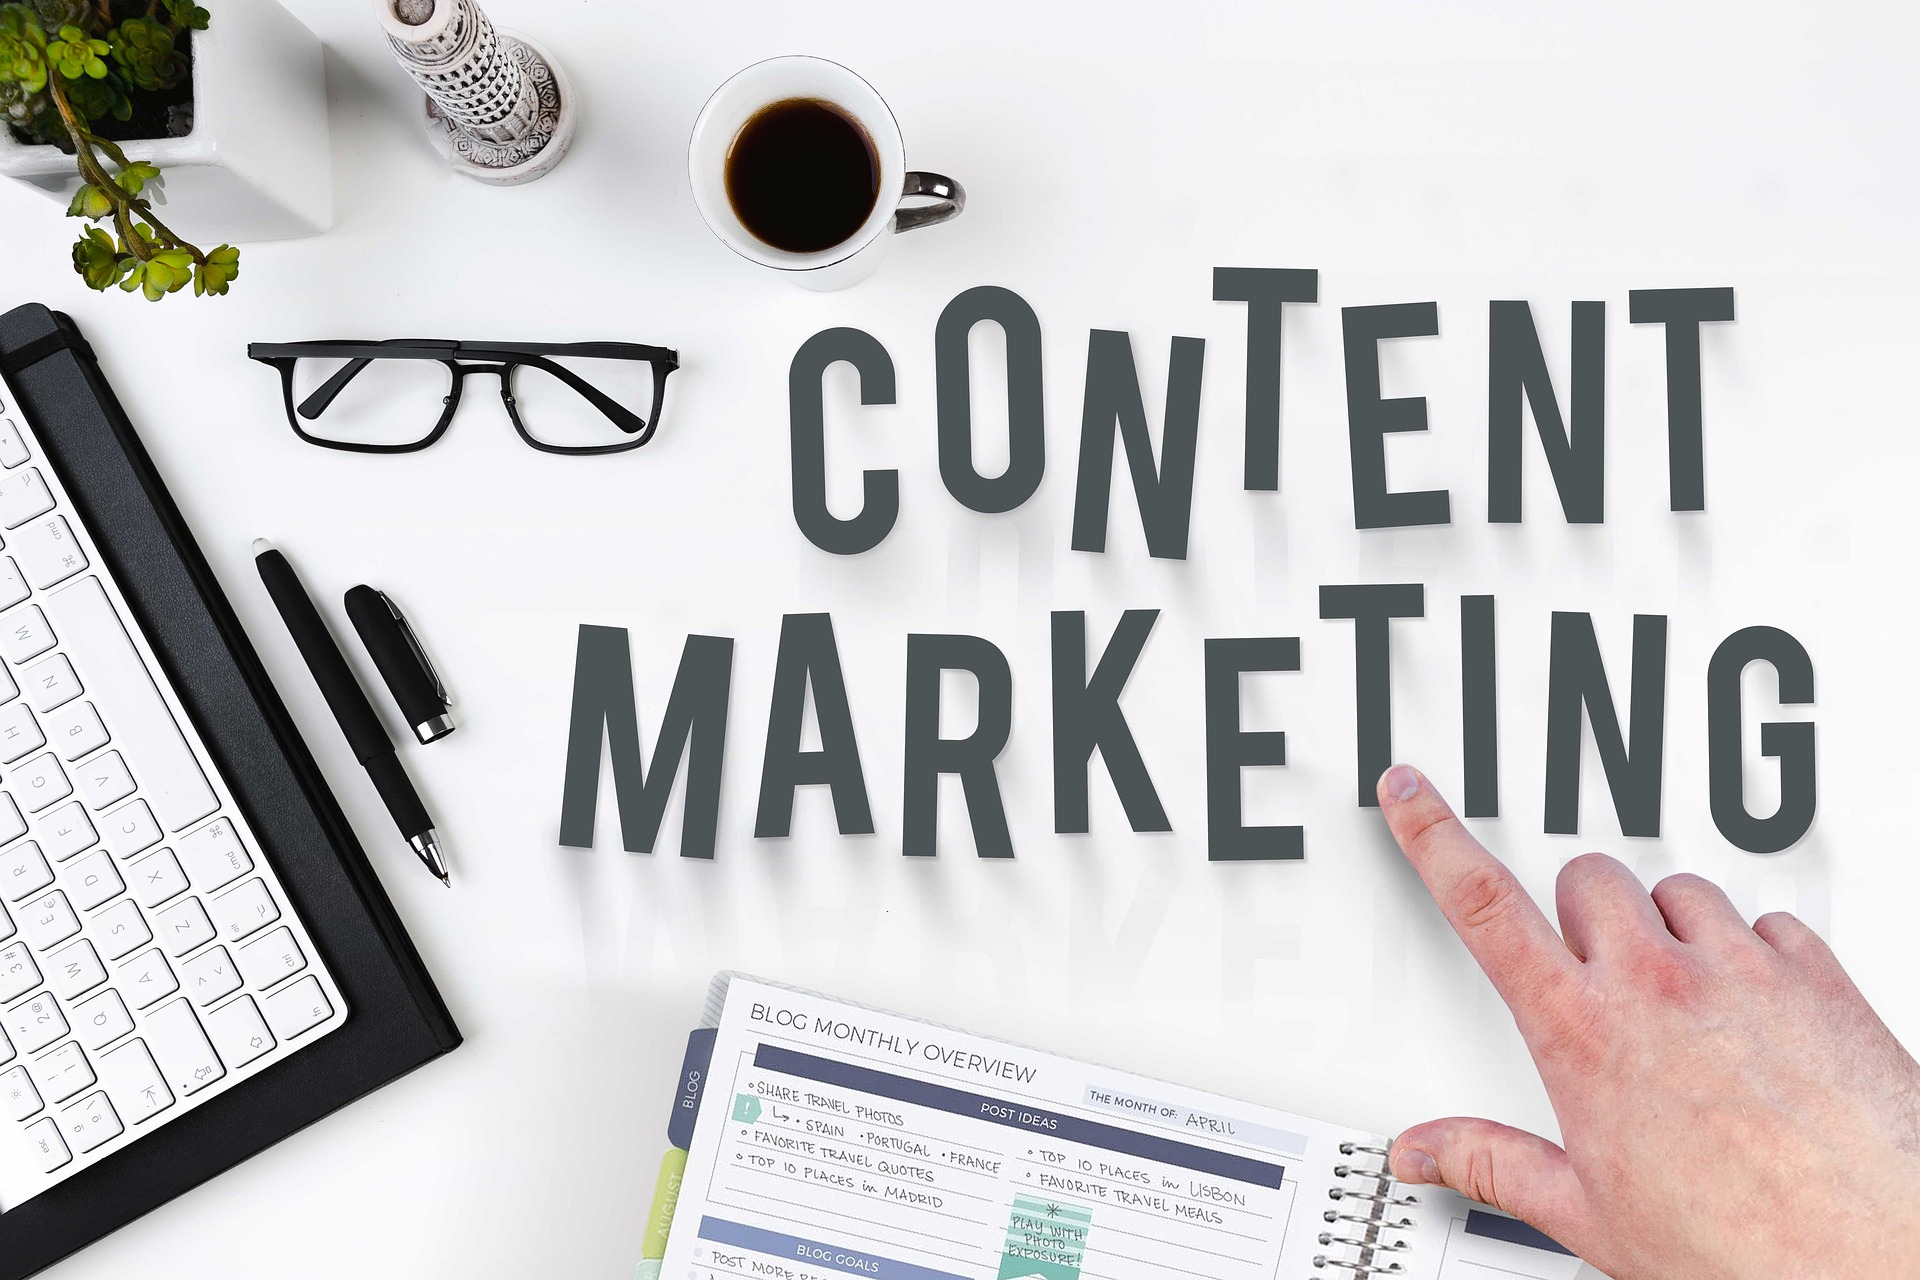 10 Content Marketing Trends You Need to Know About in 2019